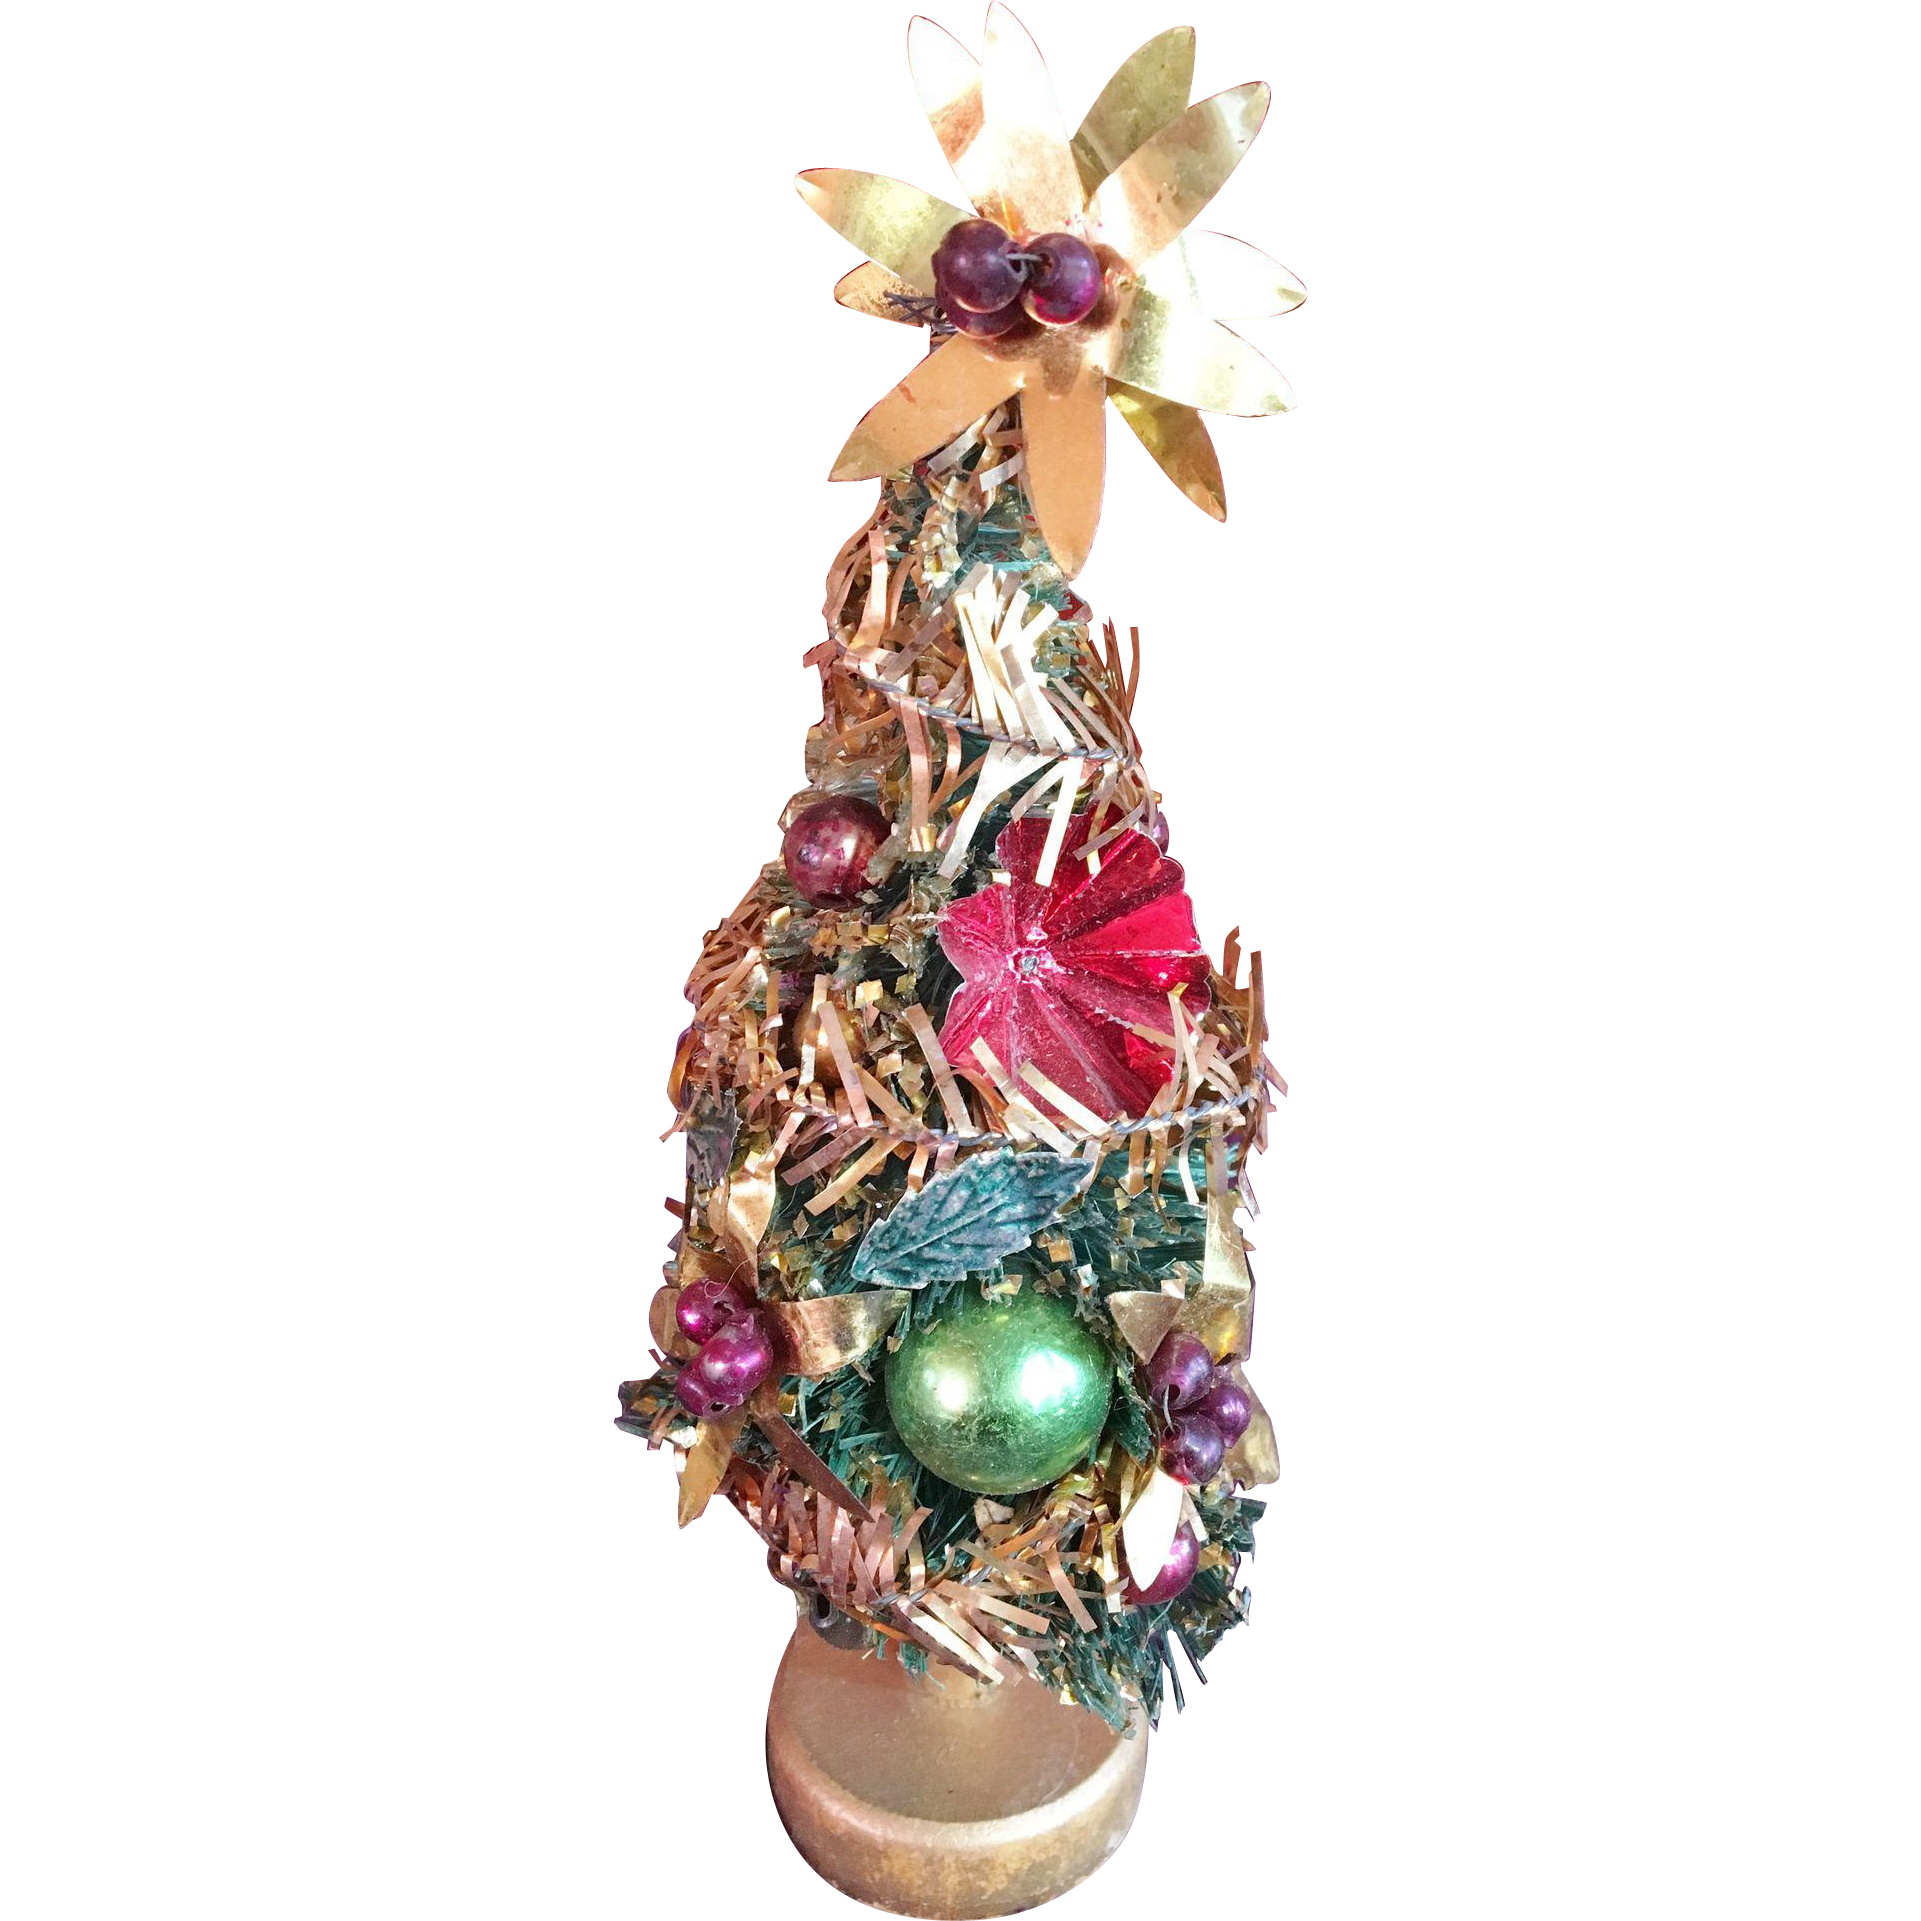 Miniature Highly Decorated Dollhouse Christmas Tree